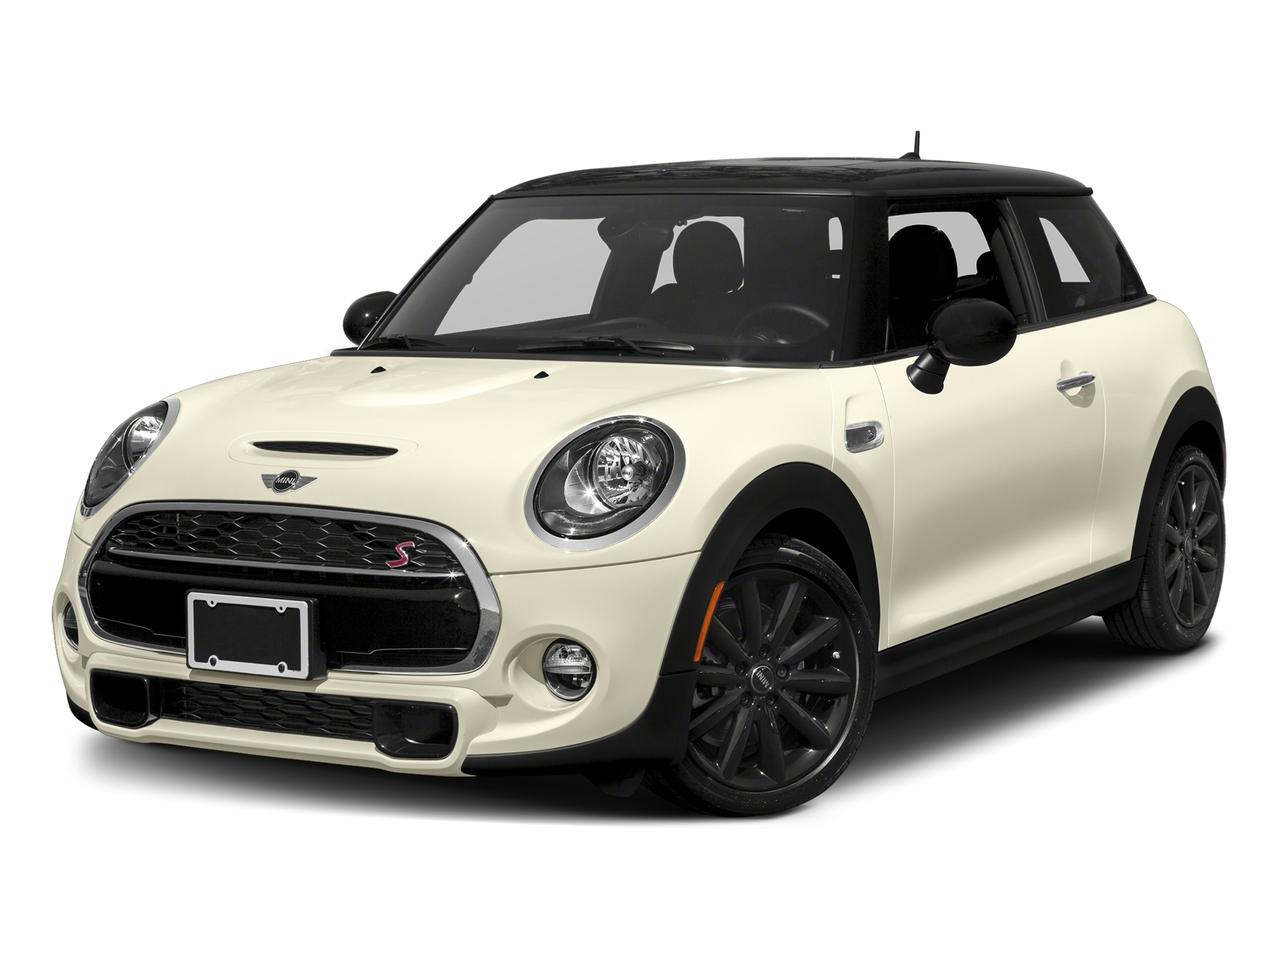 2018 MINI Cooper S Hardtop Vehicle Photo in Pleasanton, CA 94588